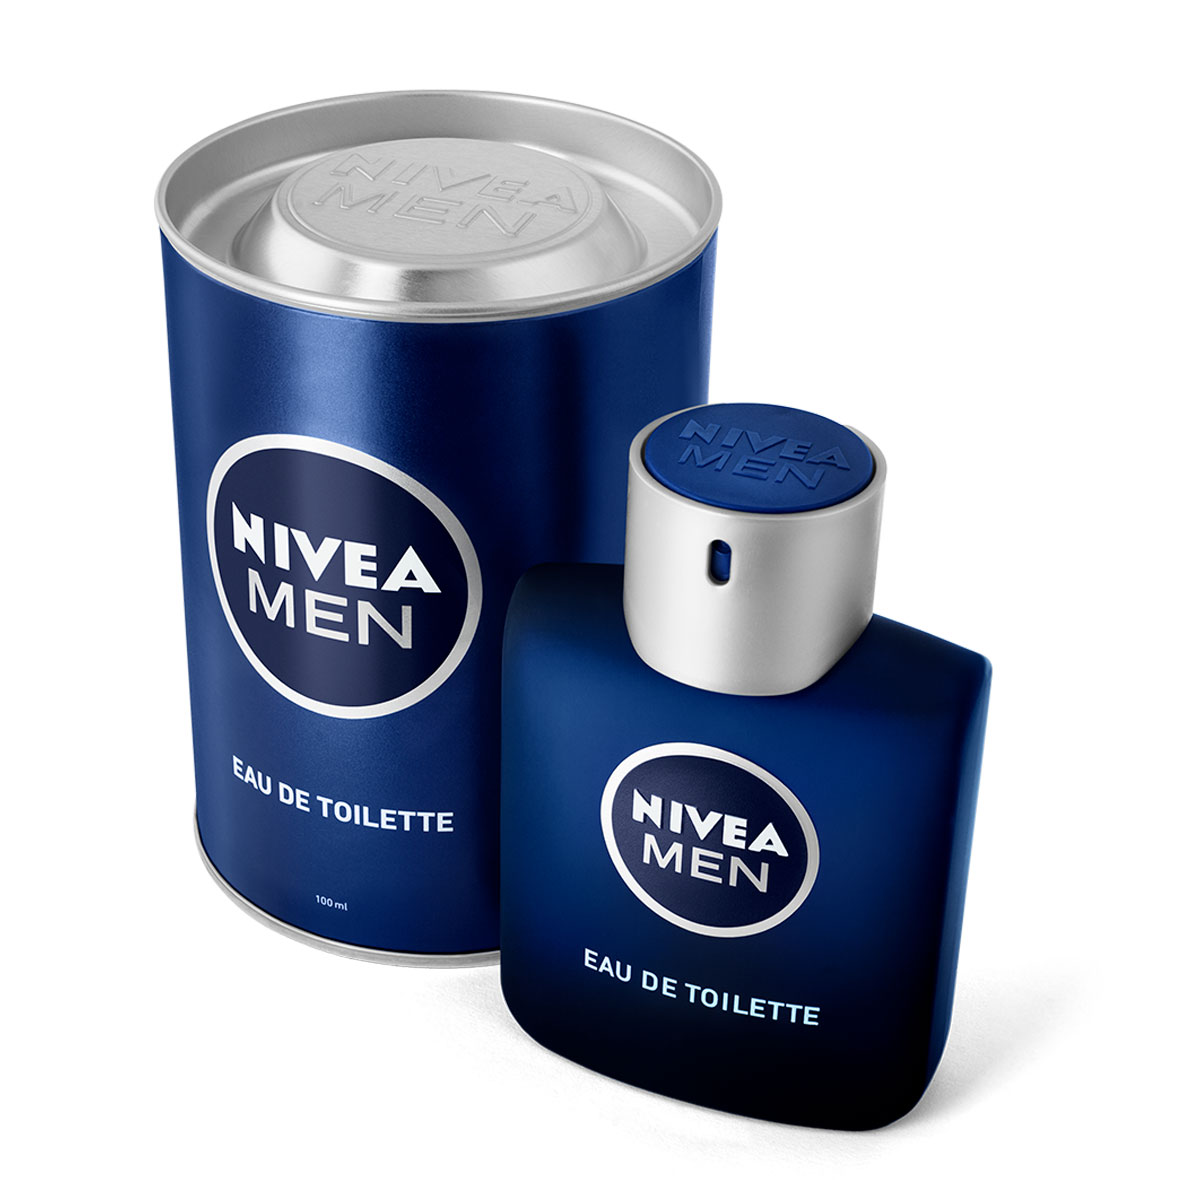 nivea men eau de toilette nuove fragranze. Black Bedroom Furniture Sets. Home Design Ideas